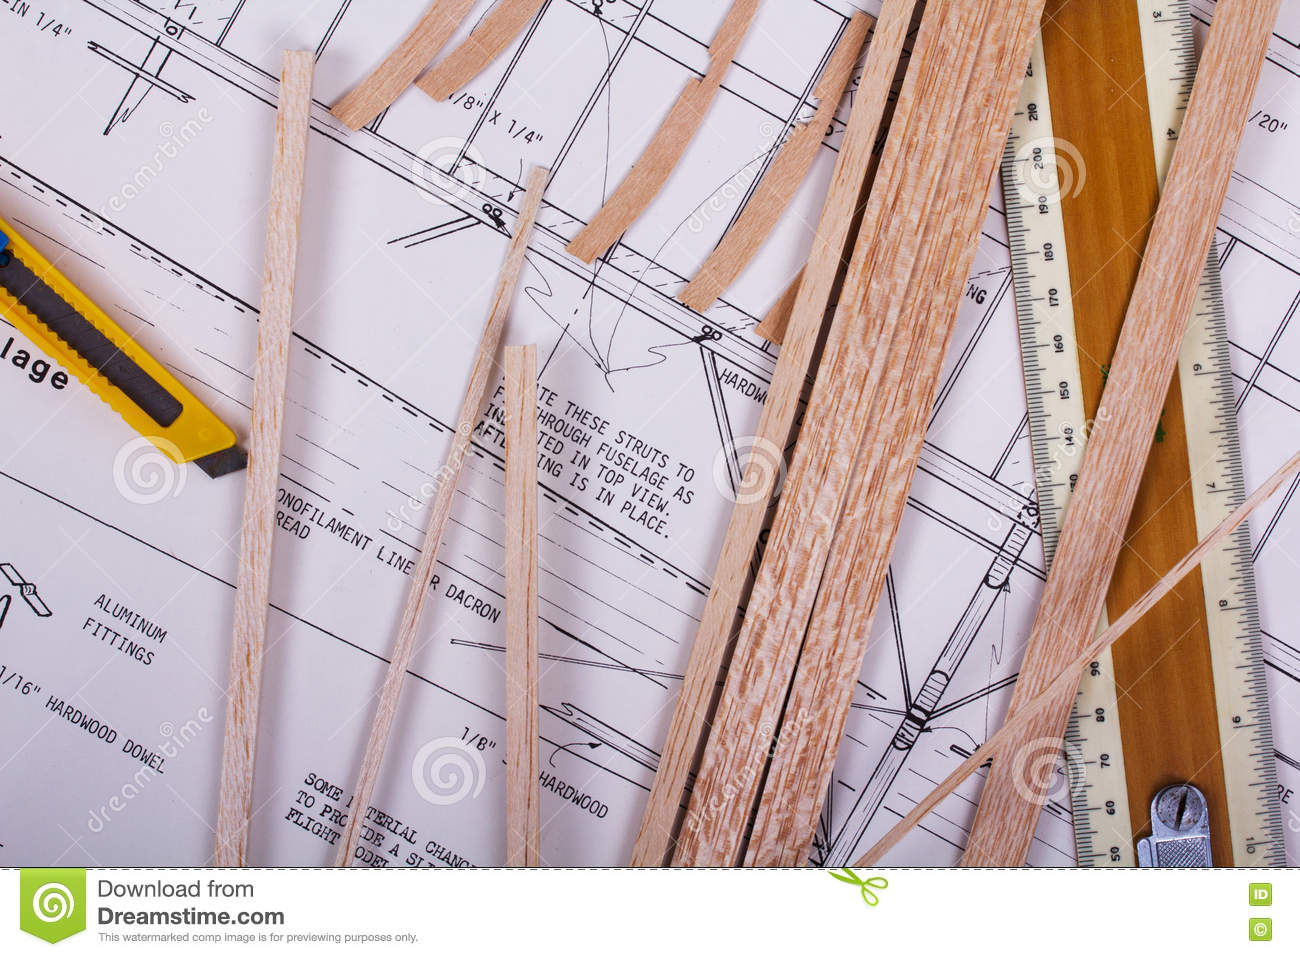 Making A Model Airplane From Balsa Wood Stock Photo - Image